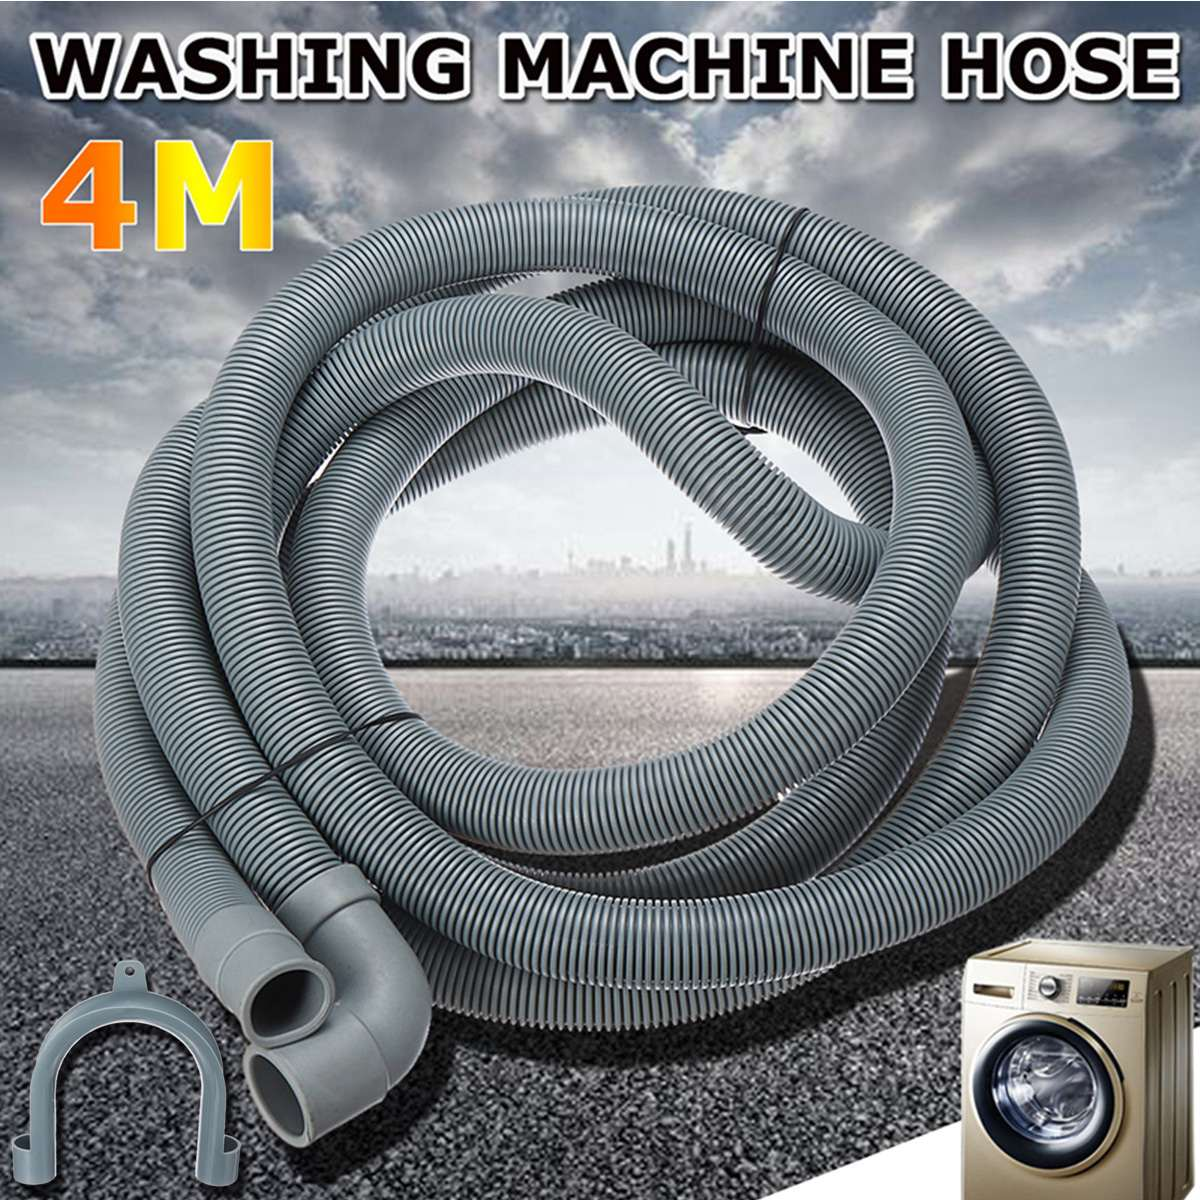 22mm Extension Drain Outlet Pipe Hose For LG Washing Machine 1.5m Kit 18mm